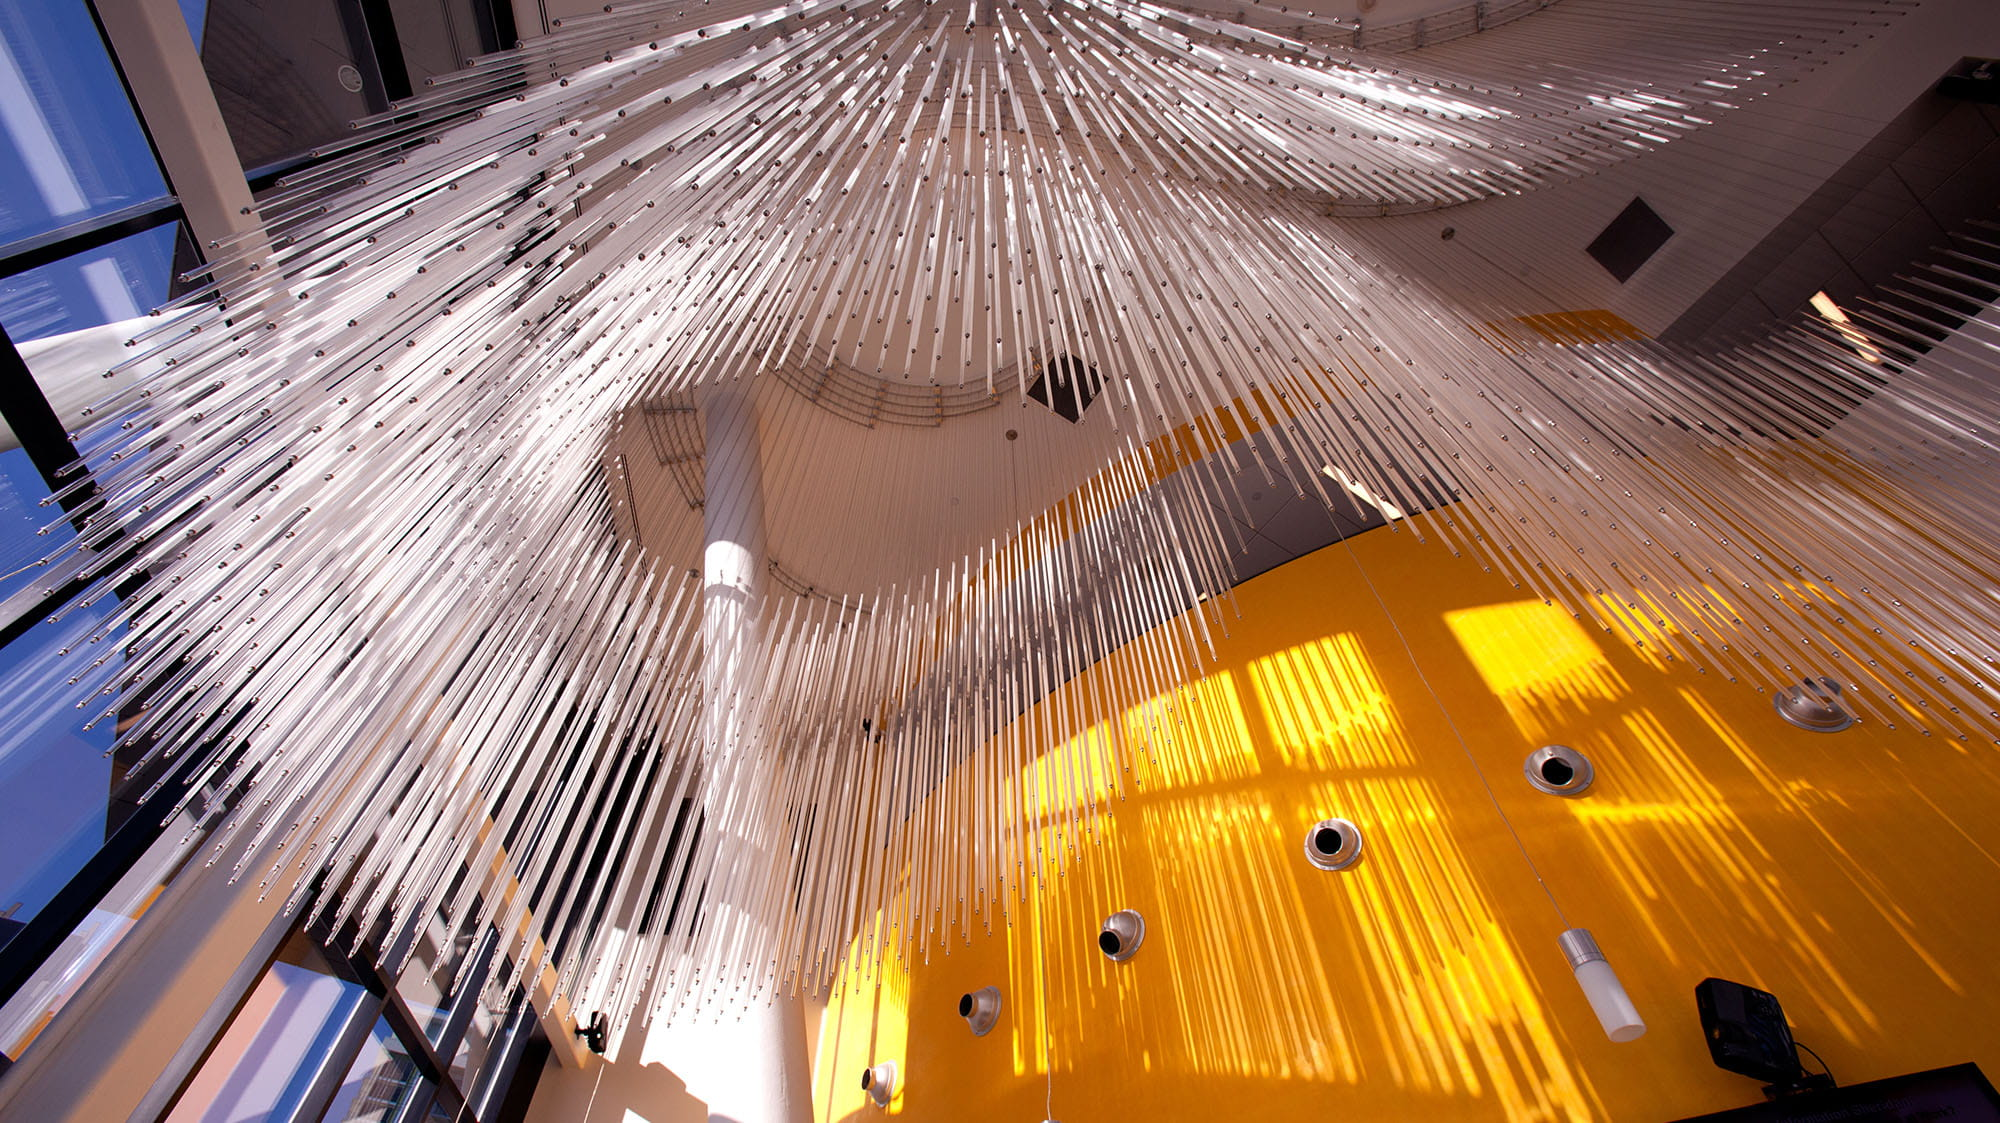 The view looking up at a sculpture of long strands of glass hanging from the ceiling